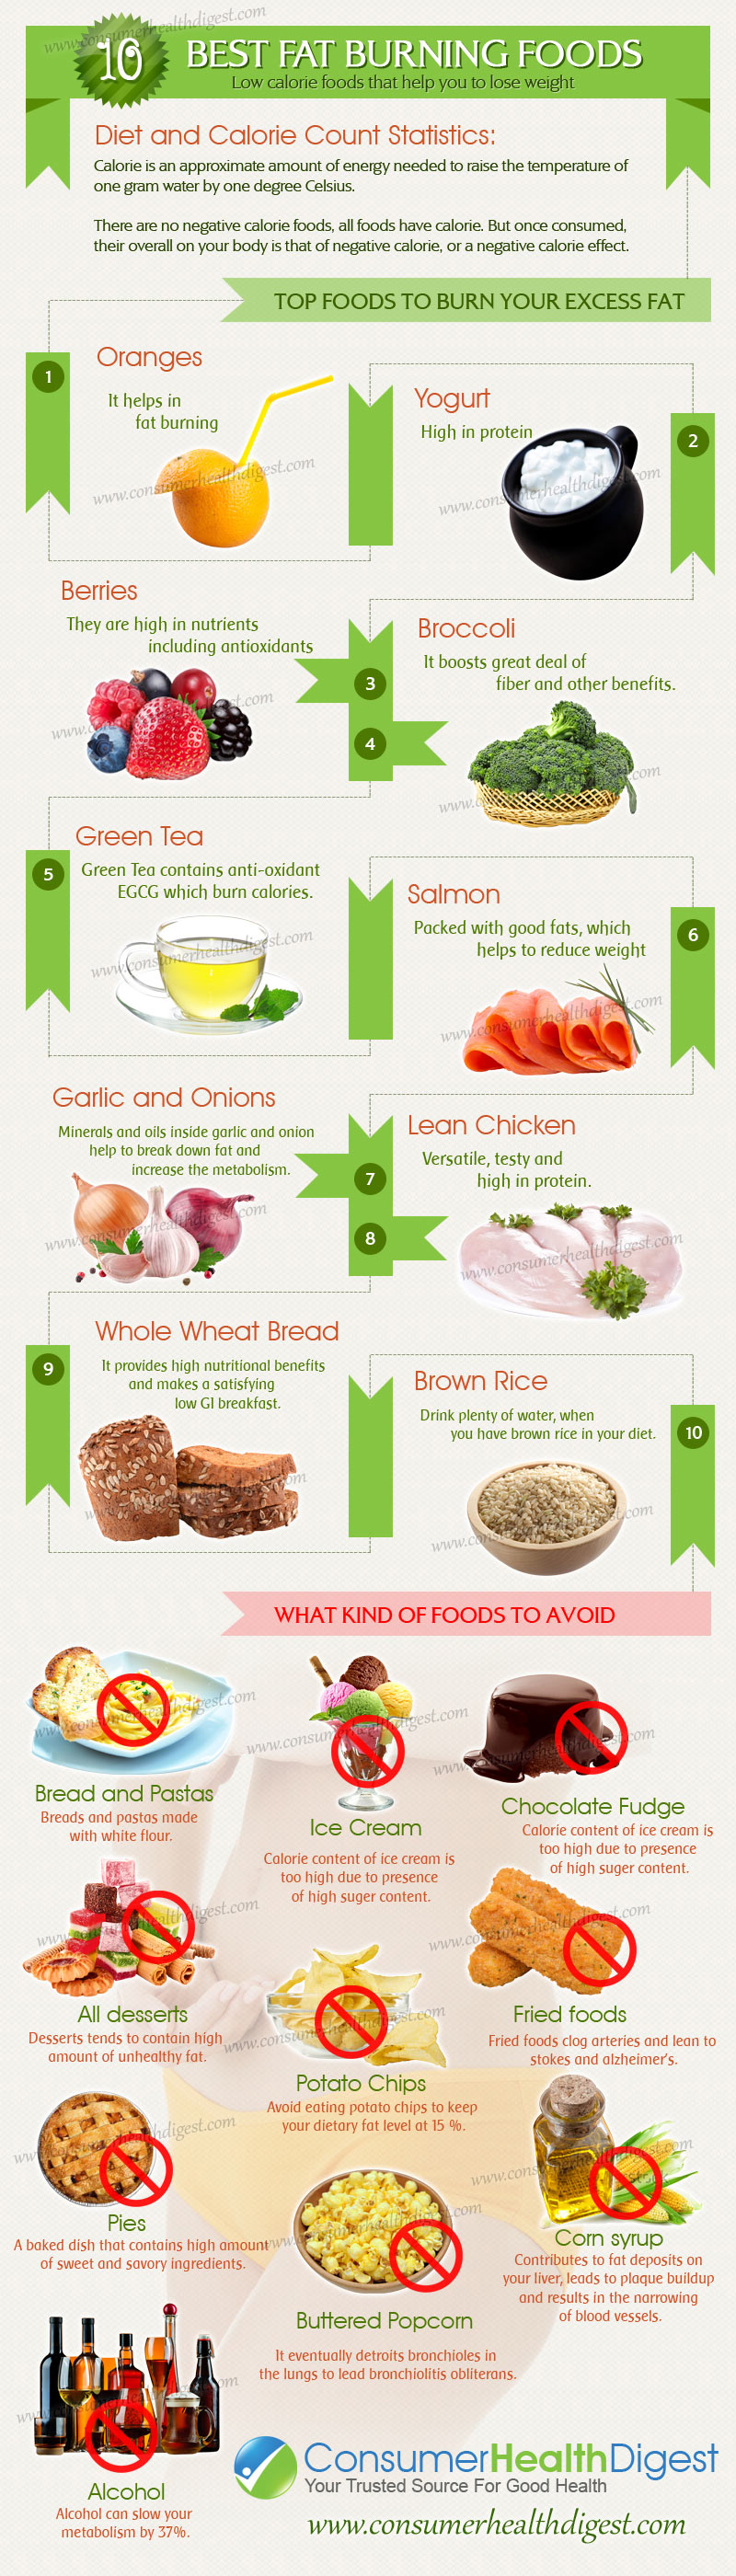 10 Best Fat Burning* Foods